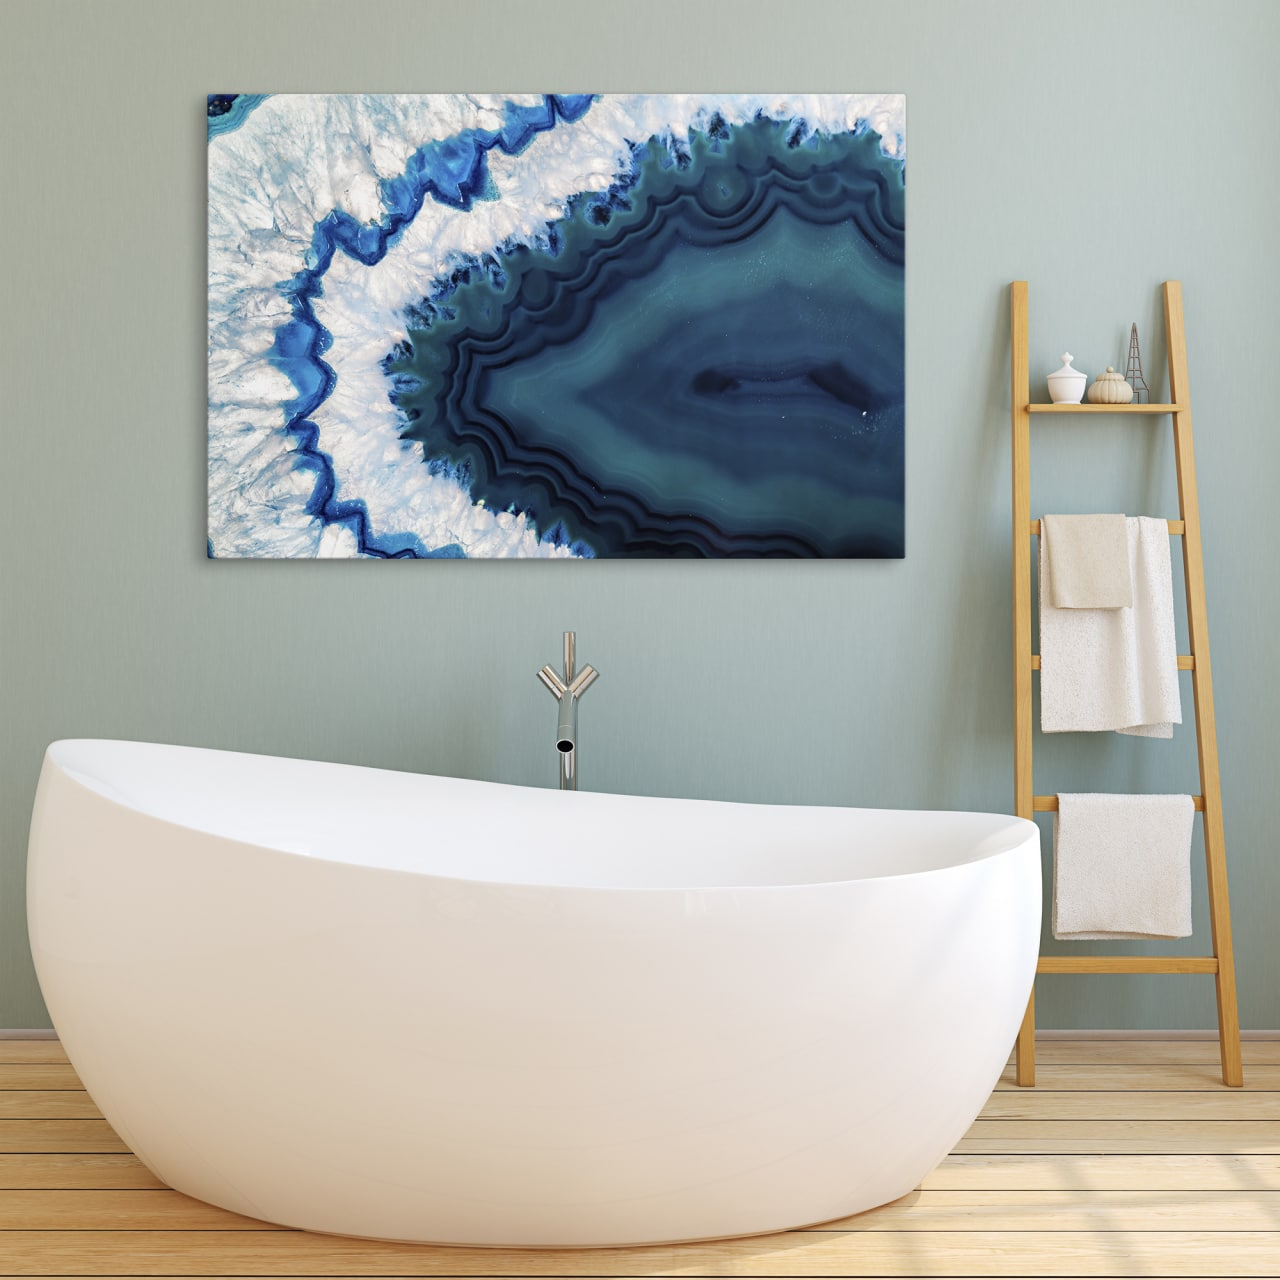 Best blue wall arts for bedroom